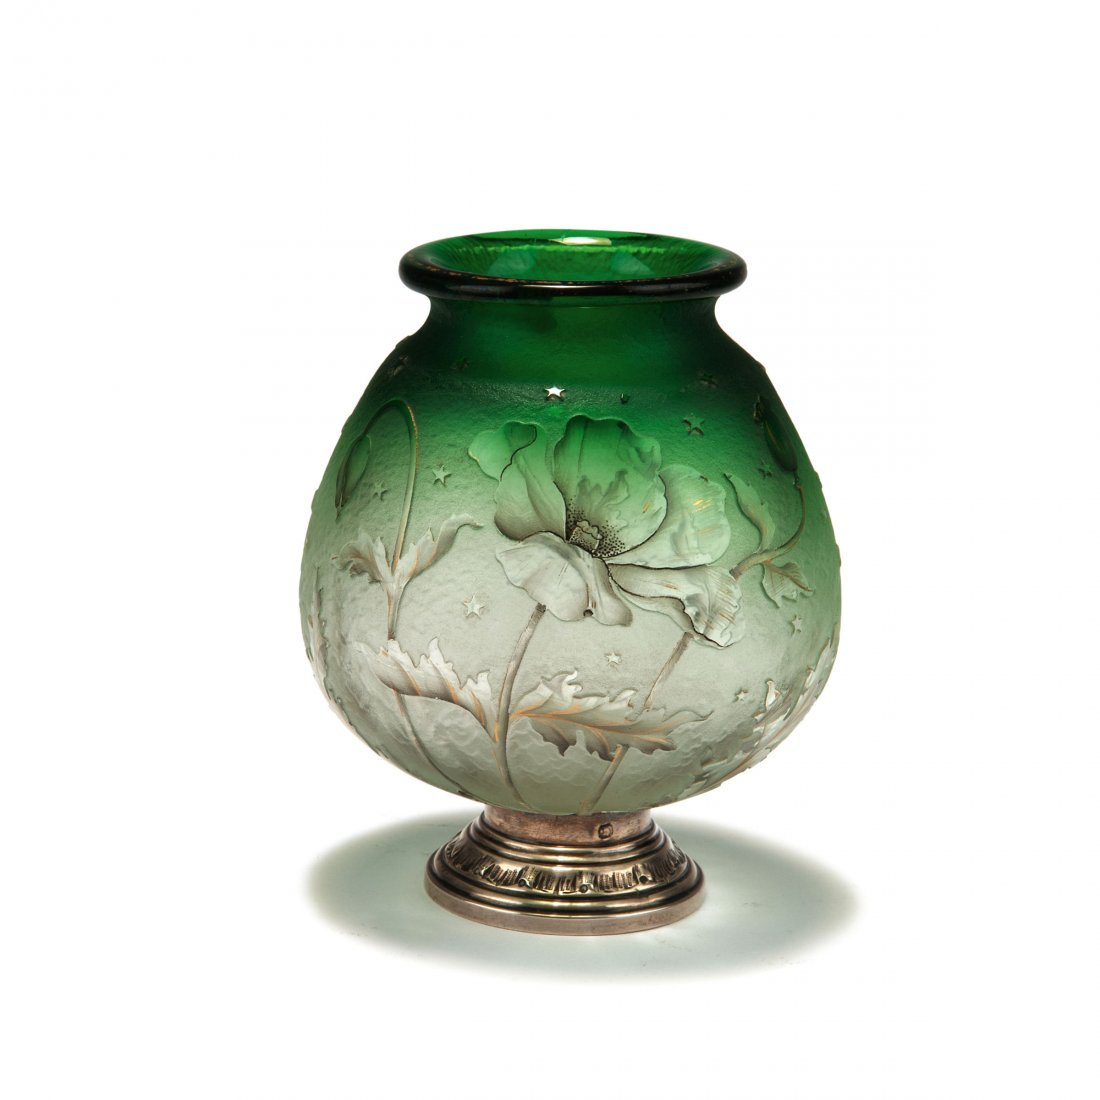 'Pavot' vase with silver mounting by Malvezieux-Aine,